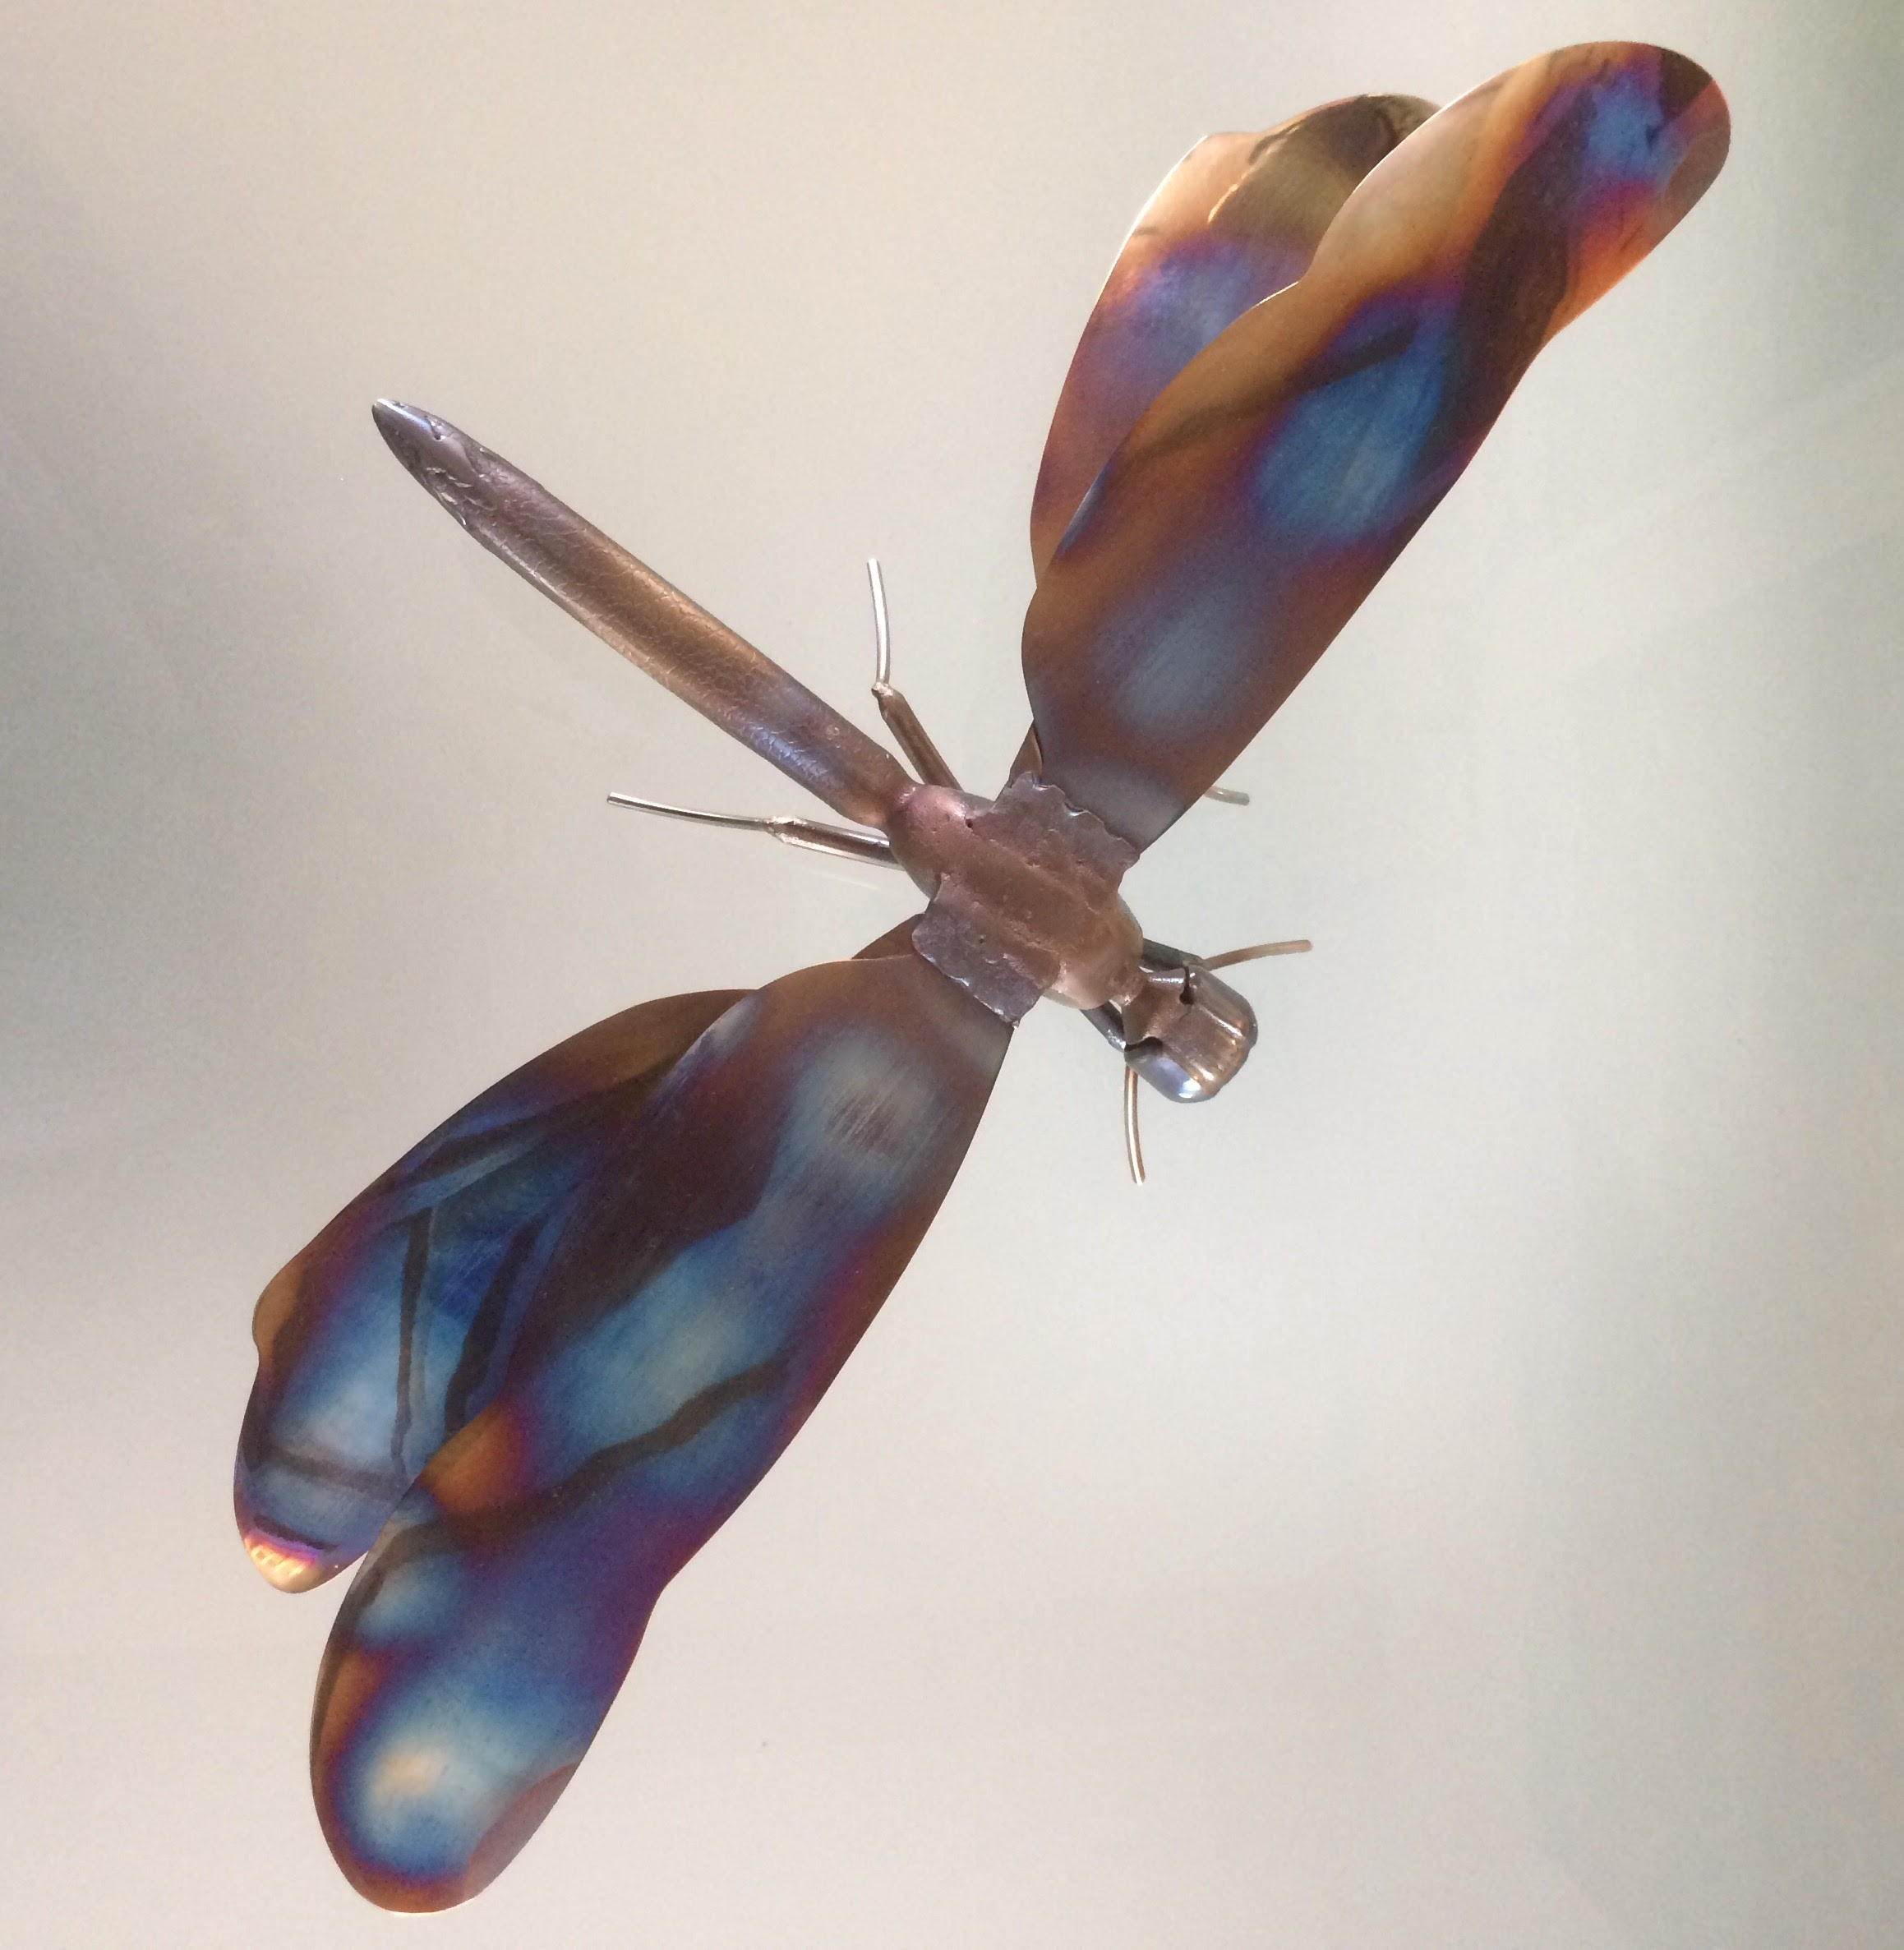 2.Dragonfly